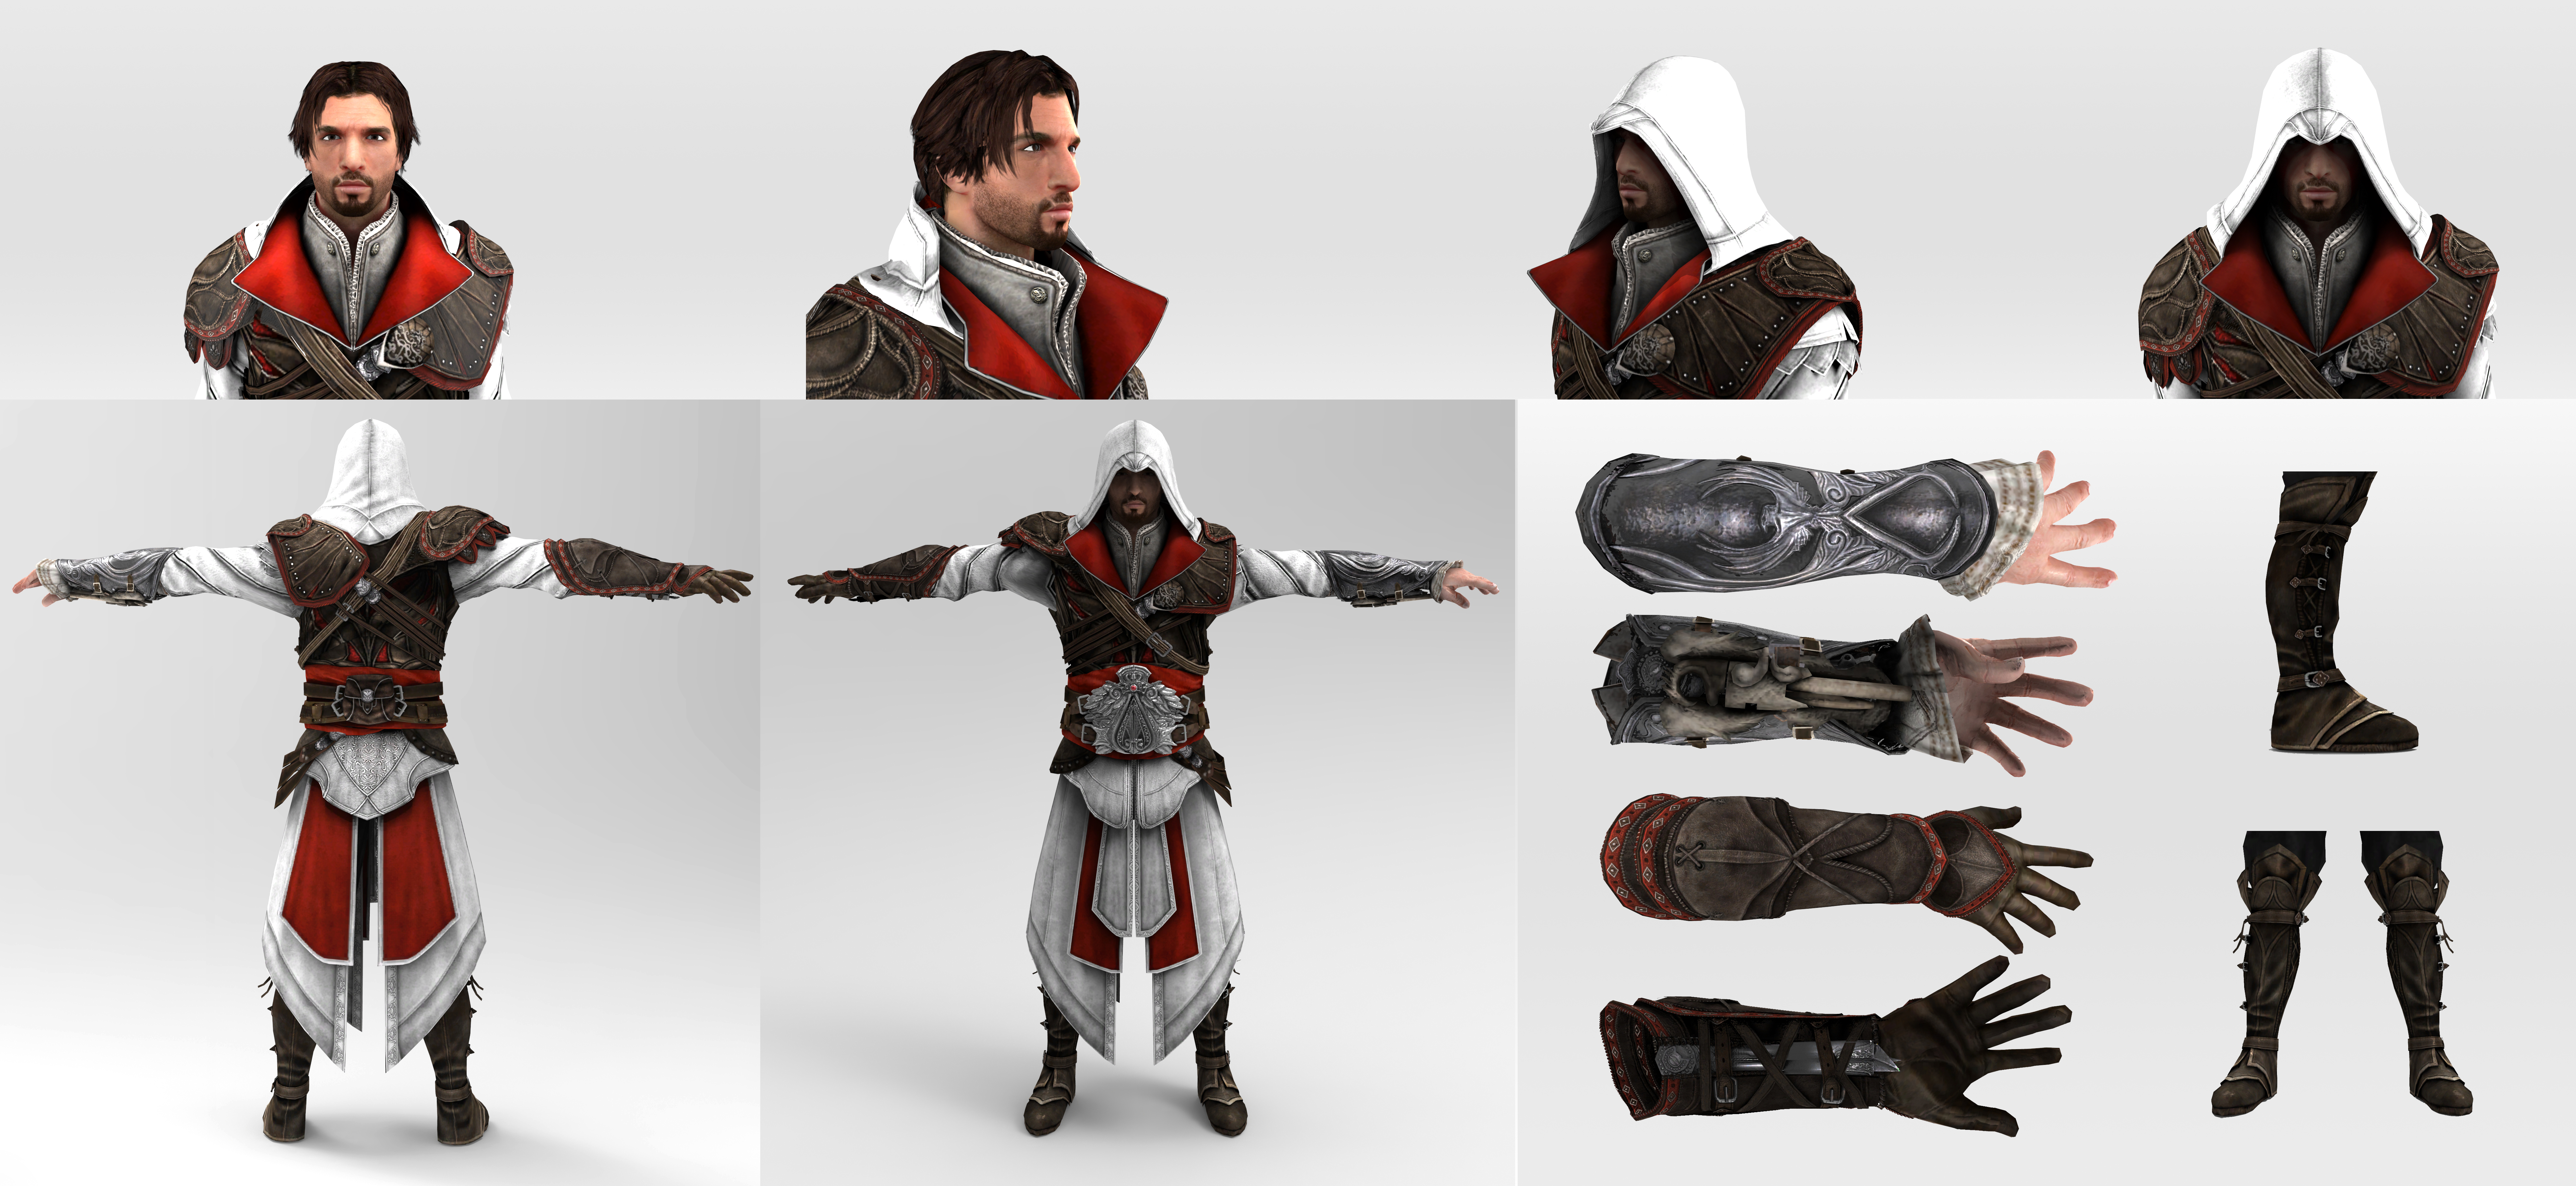 Logo Design additionally Google Co Uk And  s likewise Goingunder as well Cosplay Reference Ezio Auditore Brotherhood 505616542 in addition Festival Of Trees. on hope logo